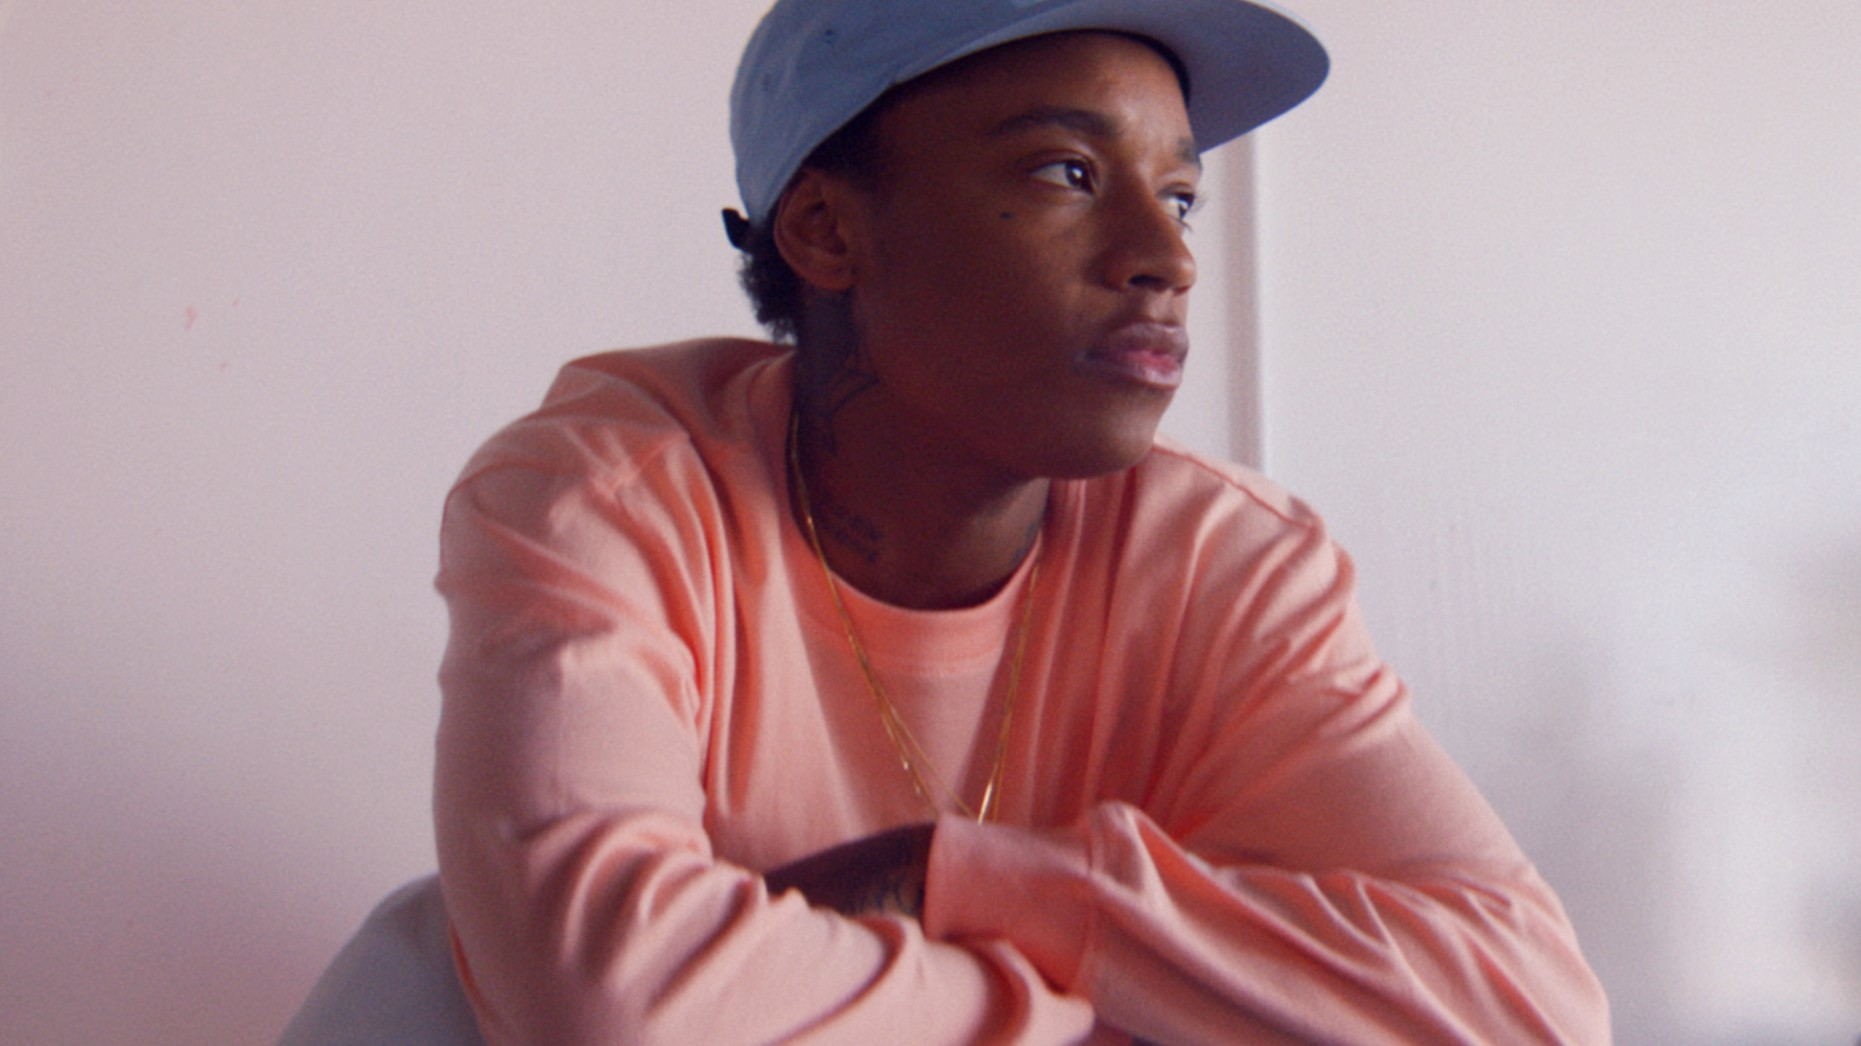 watch rejjie snow's new video for 'keep your head up' exclusively on i-D!